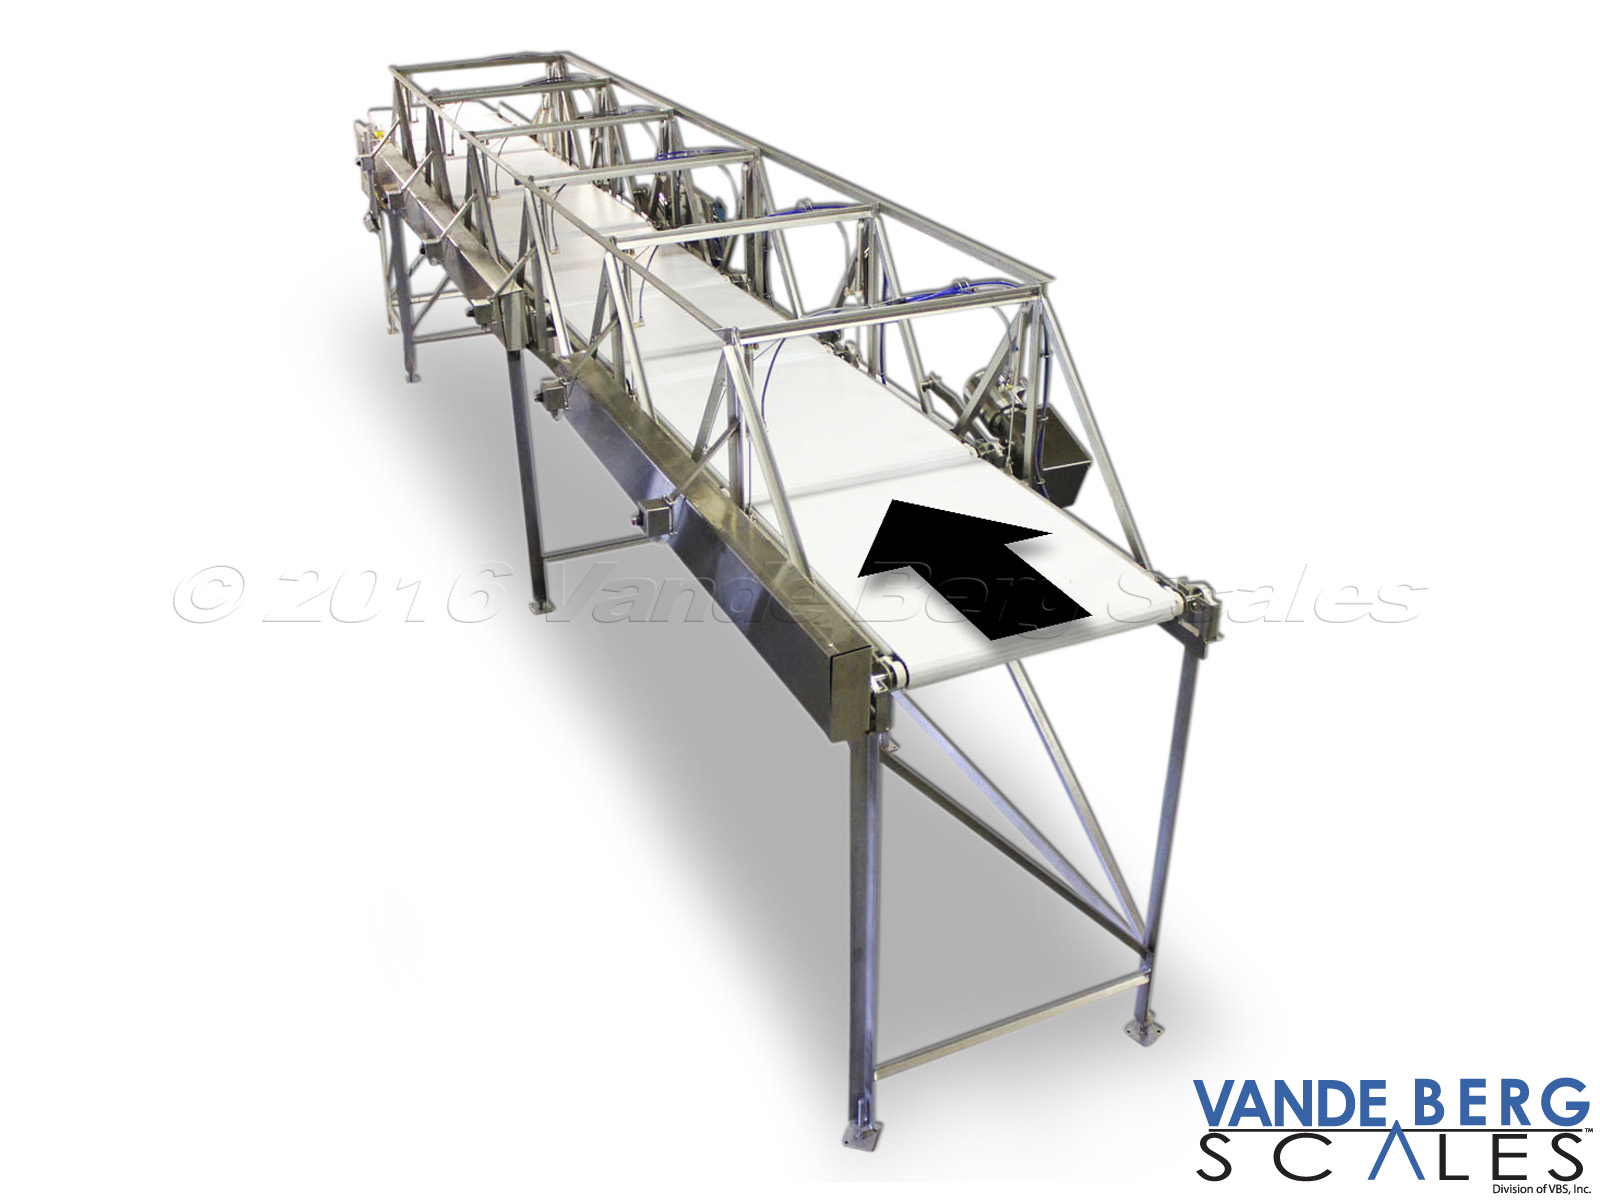 Loin sortation system with pop-up conveyors